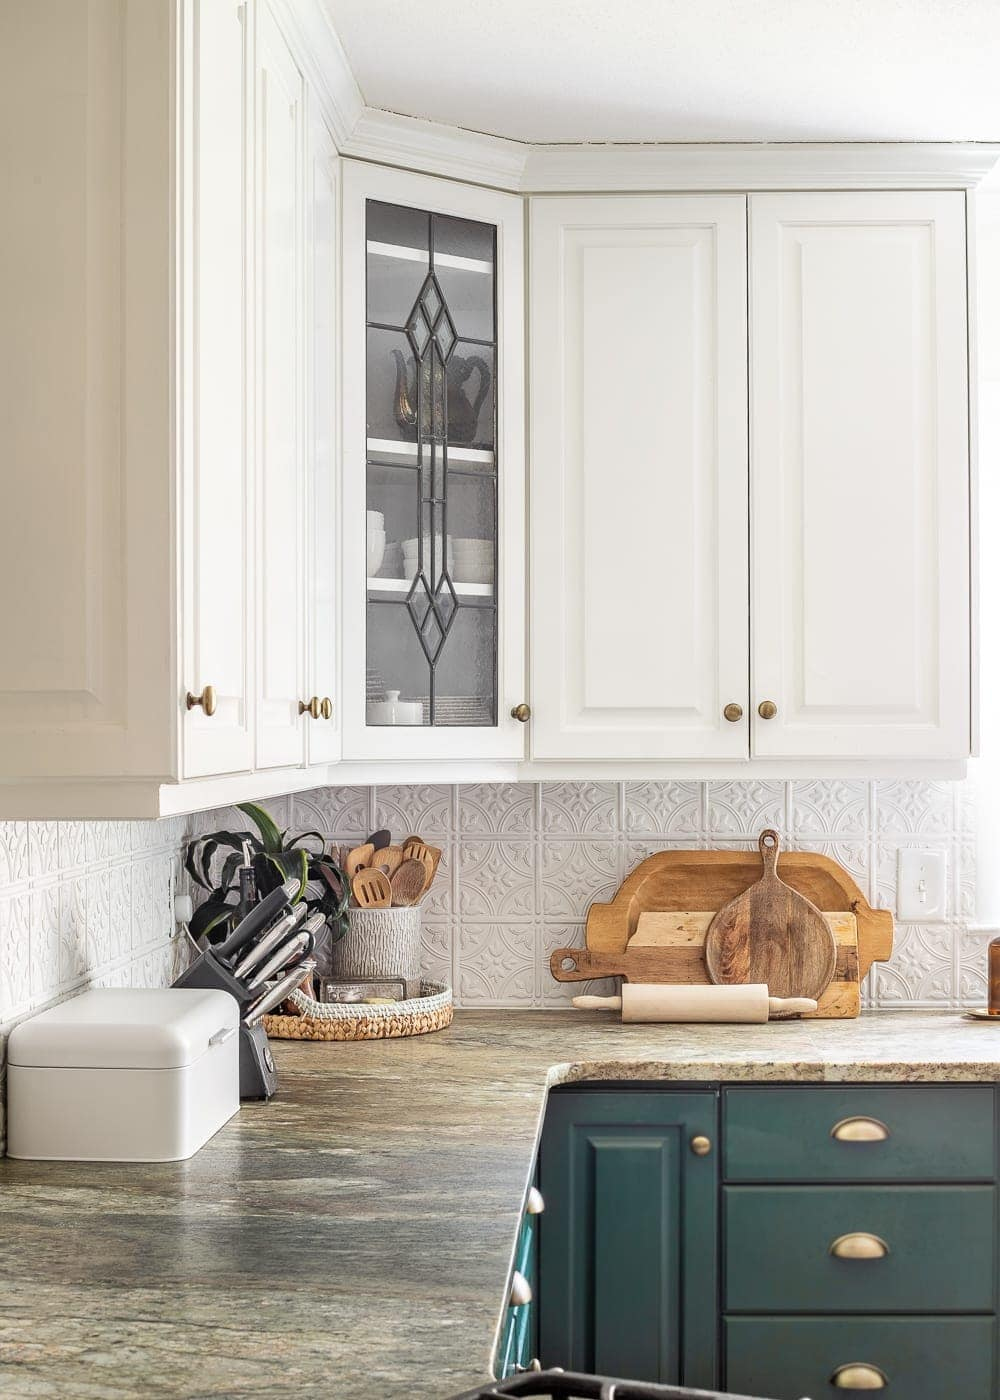 cutting boards, bread box, knife block, and tray to decorate kitchen countertops